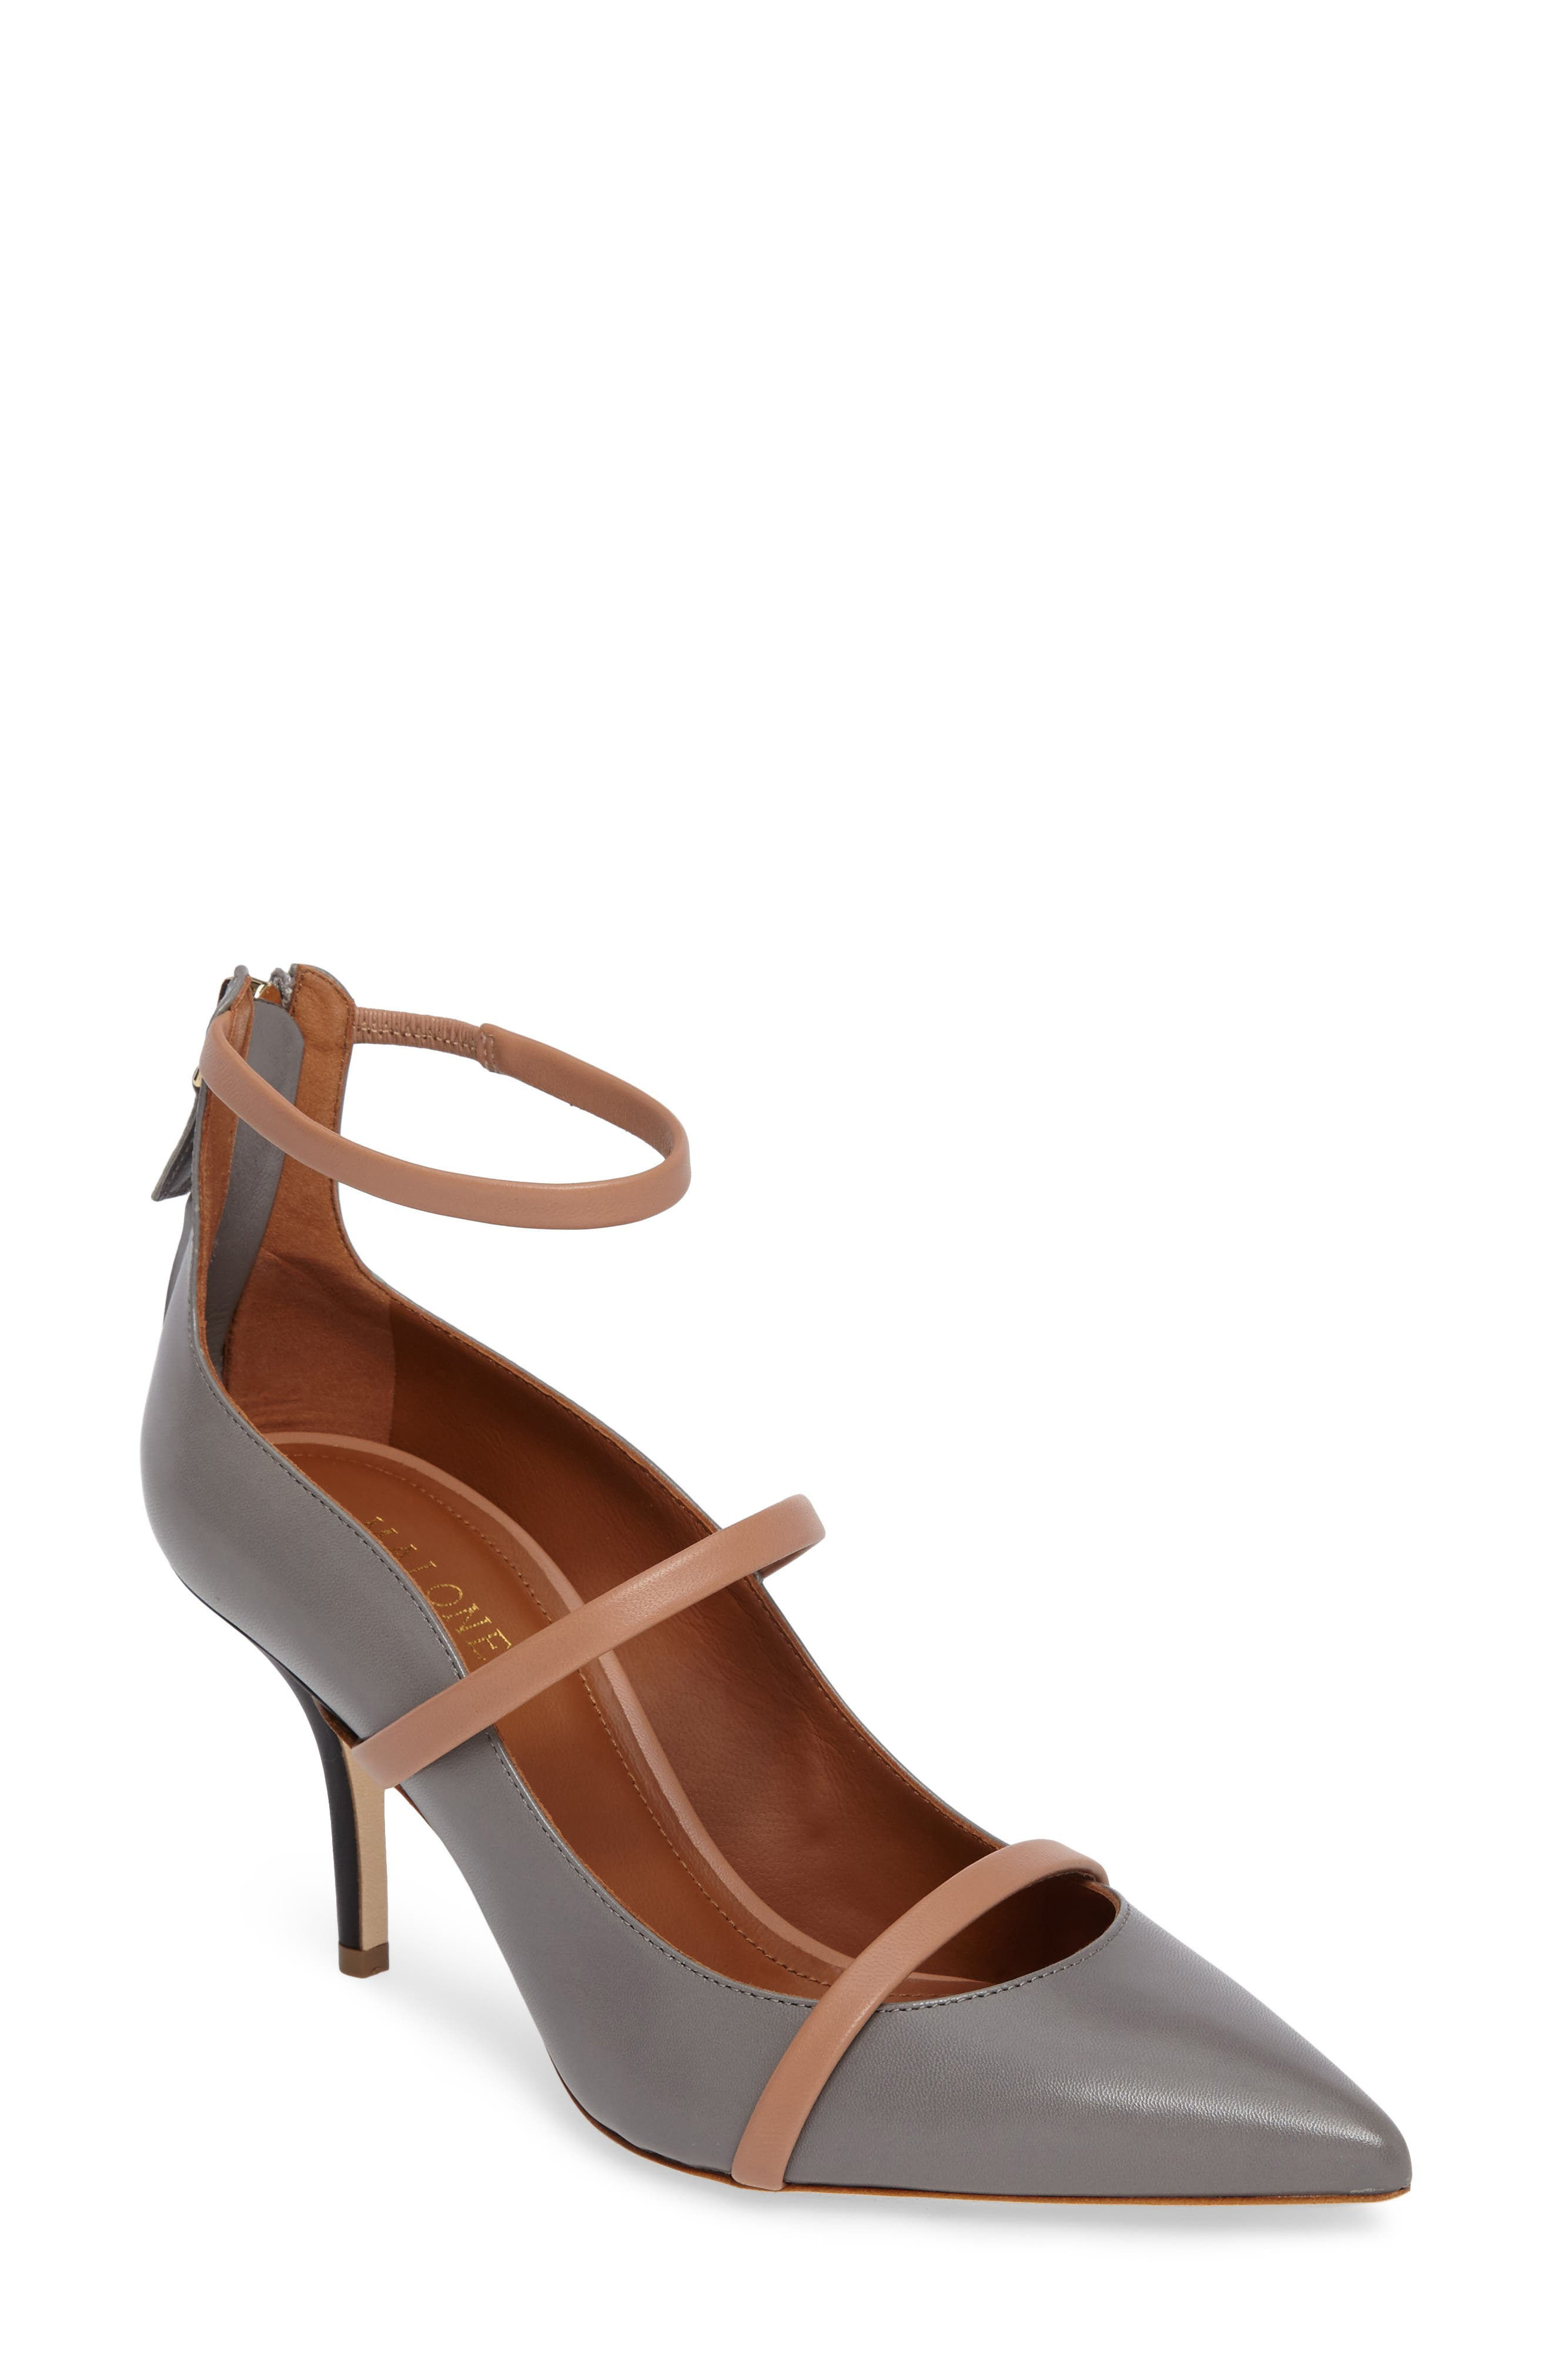 Robyn Ankle Strap Pump,                             Main thumbnail 1, color,                             020